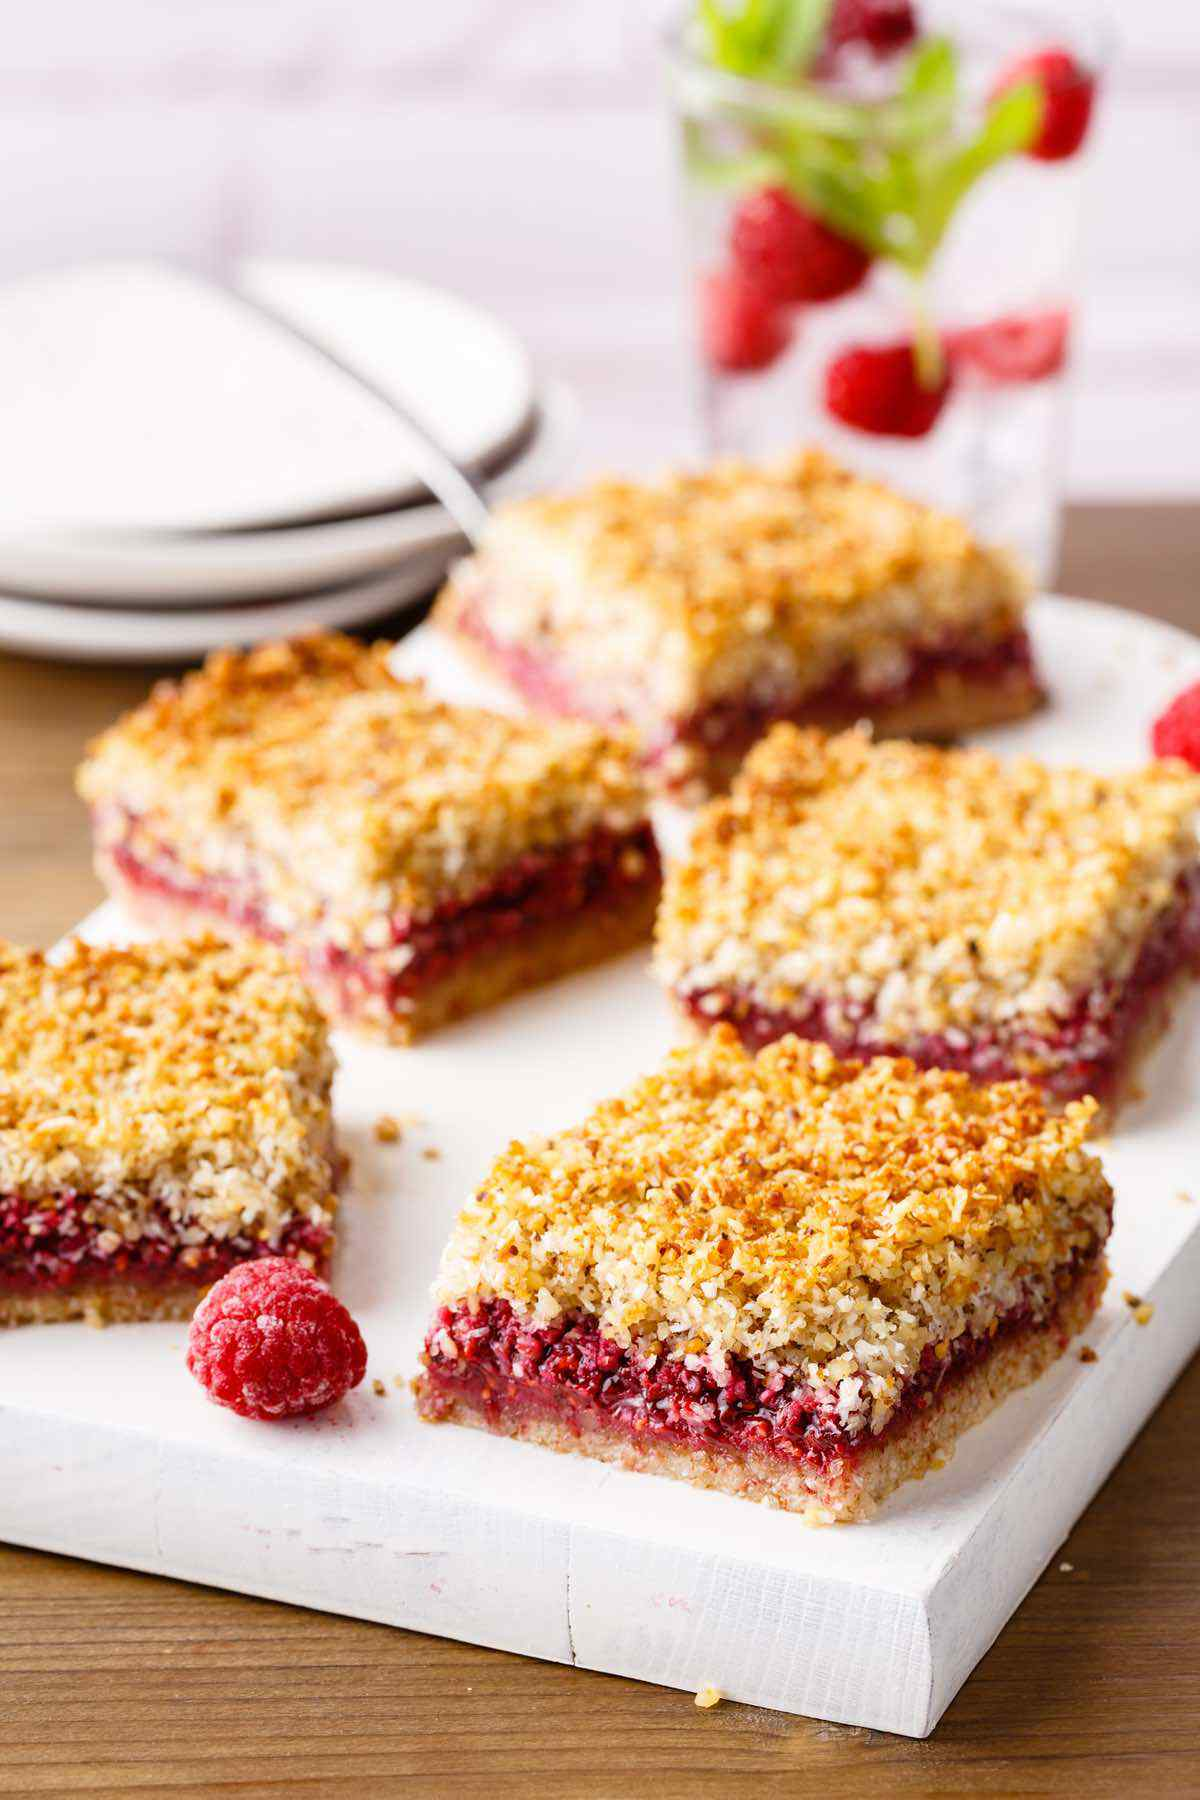 Looking for a healthy snack that makes excellent use of your preferred choice of berries and chia seeds? Check out this recipe for raspberry crumble bars -- swap out the raspberries for your favorite berries as you please.